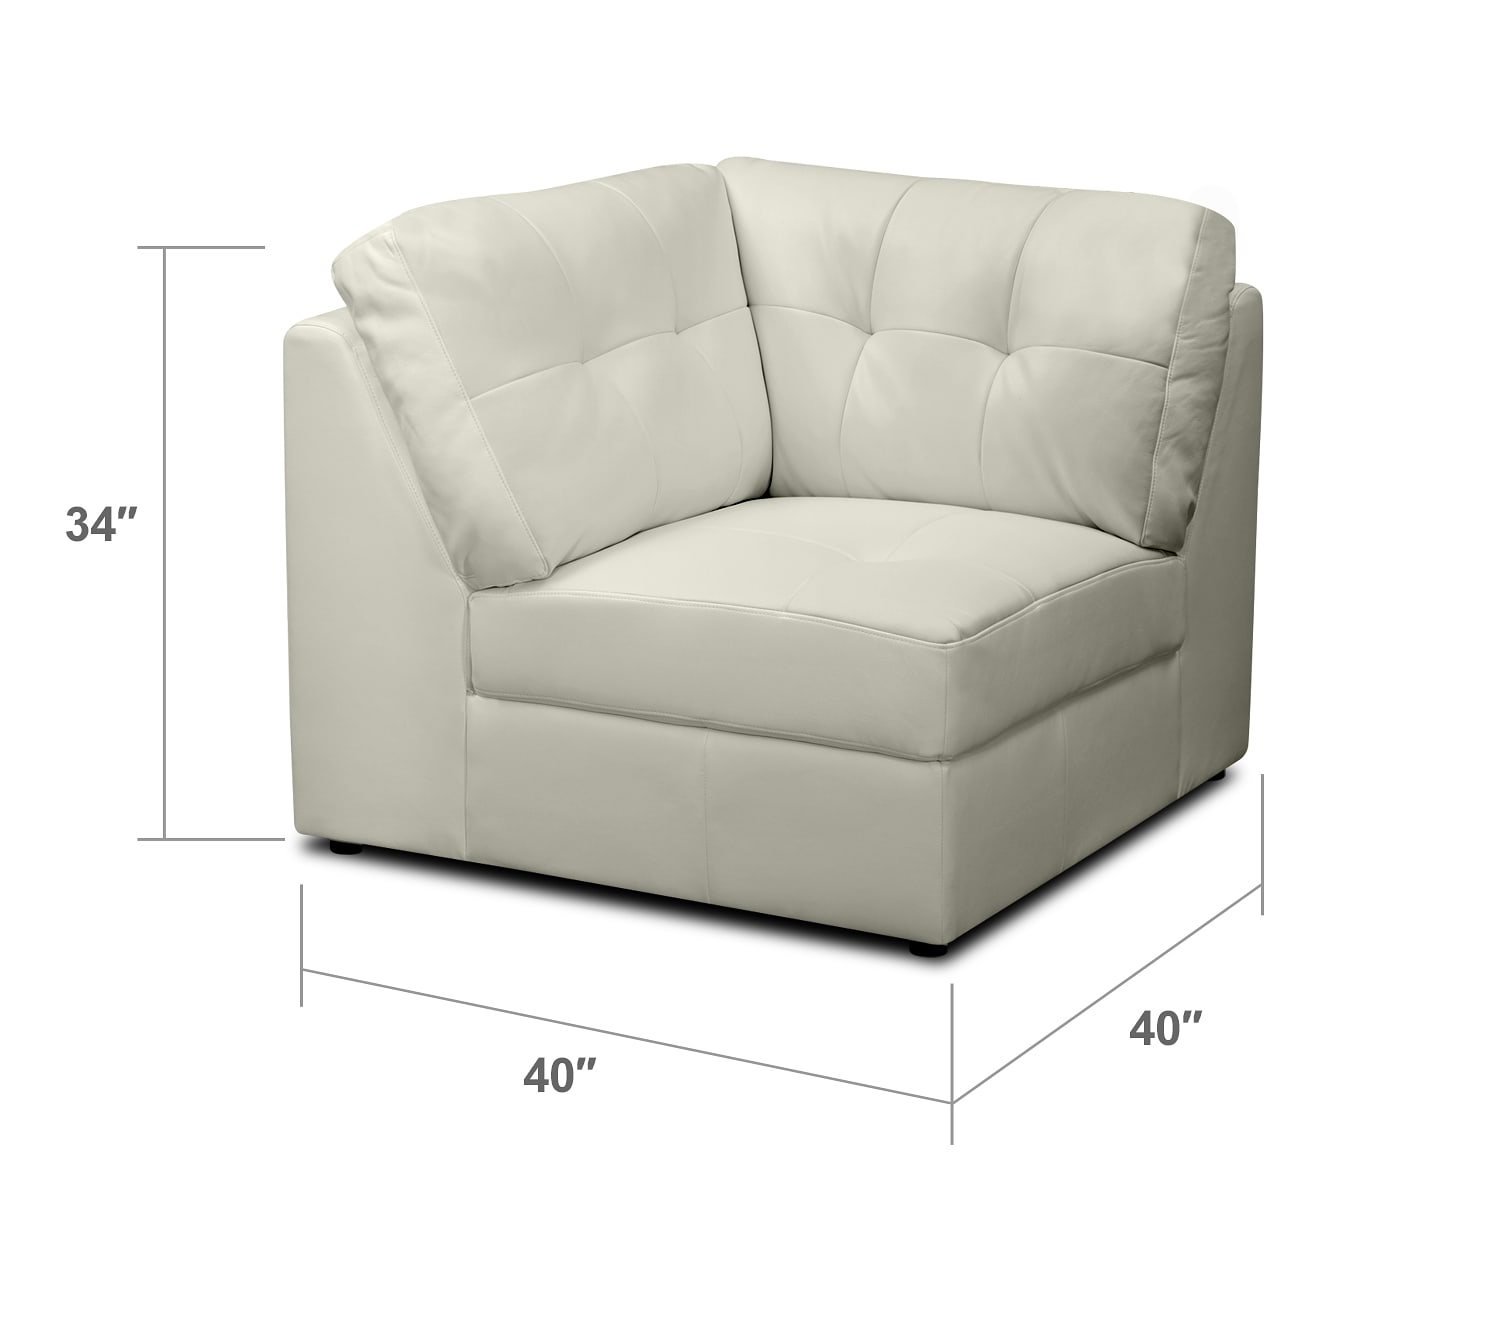 Living Room Furniture - Largo White Wedge